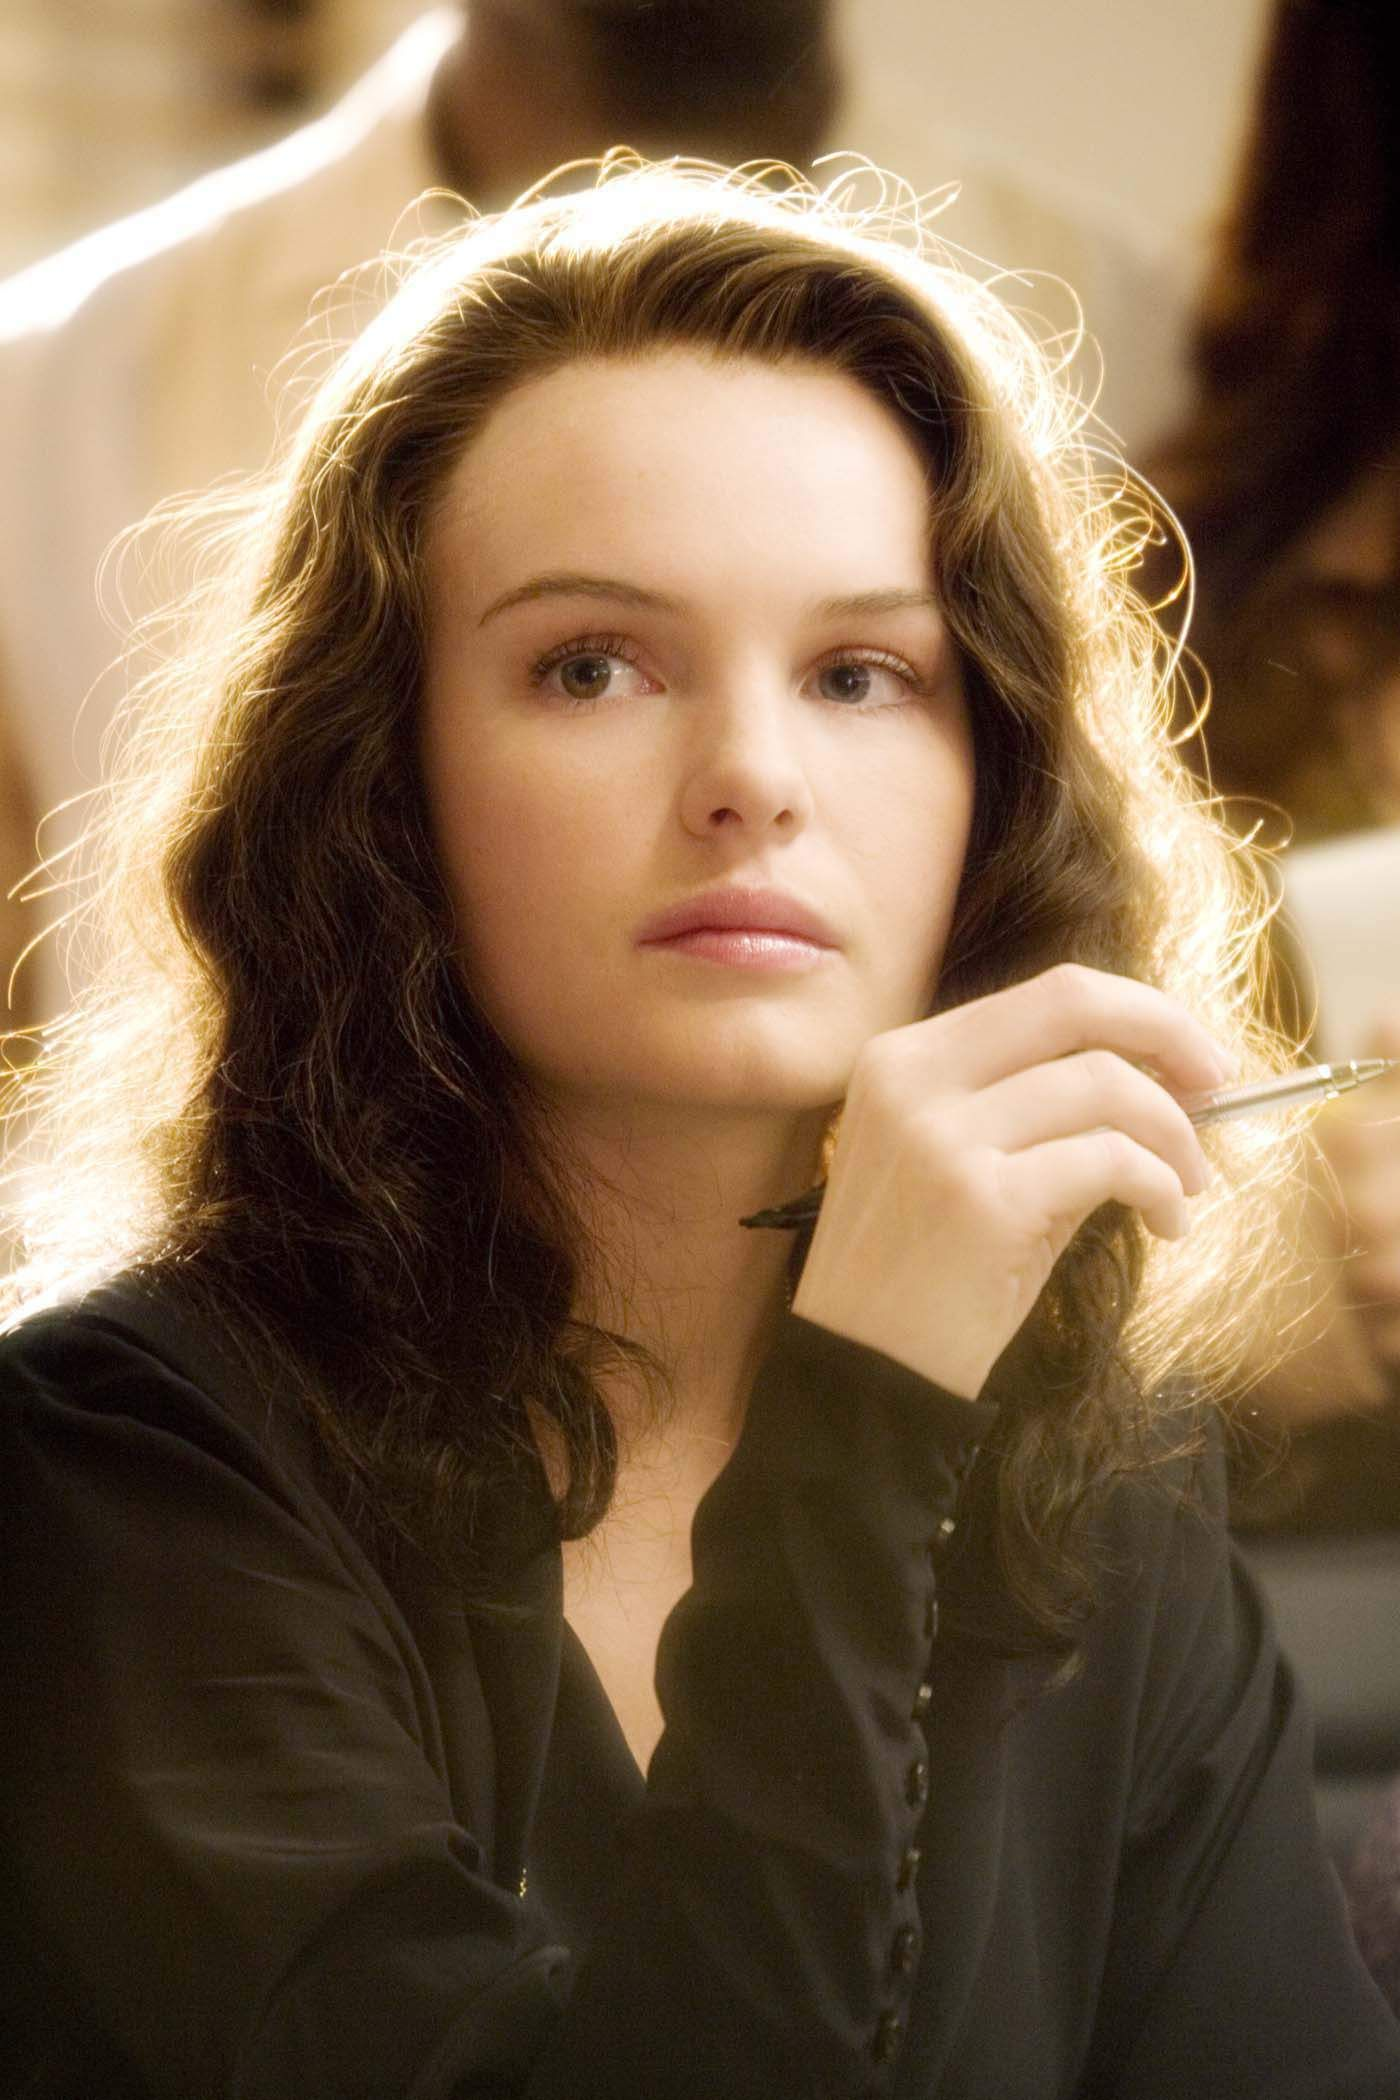 Kate Bosworth as Lois ... Kate Bosworth Movies